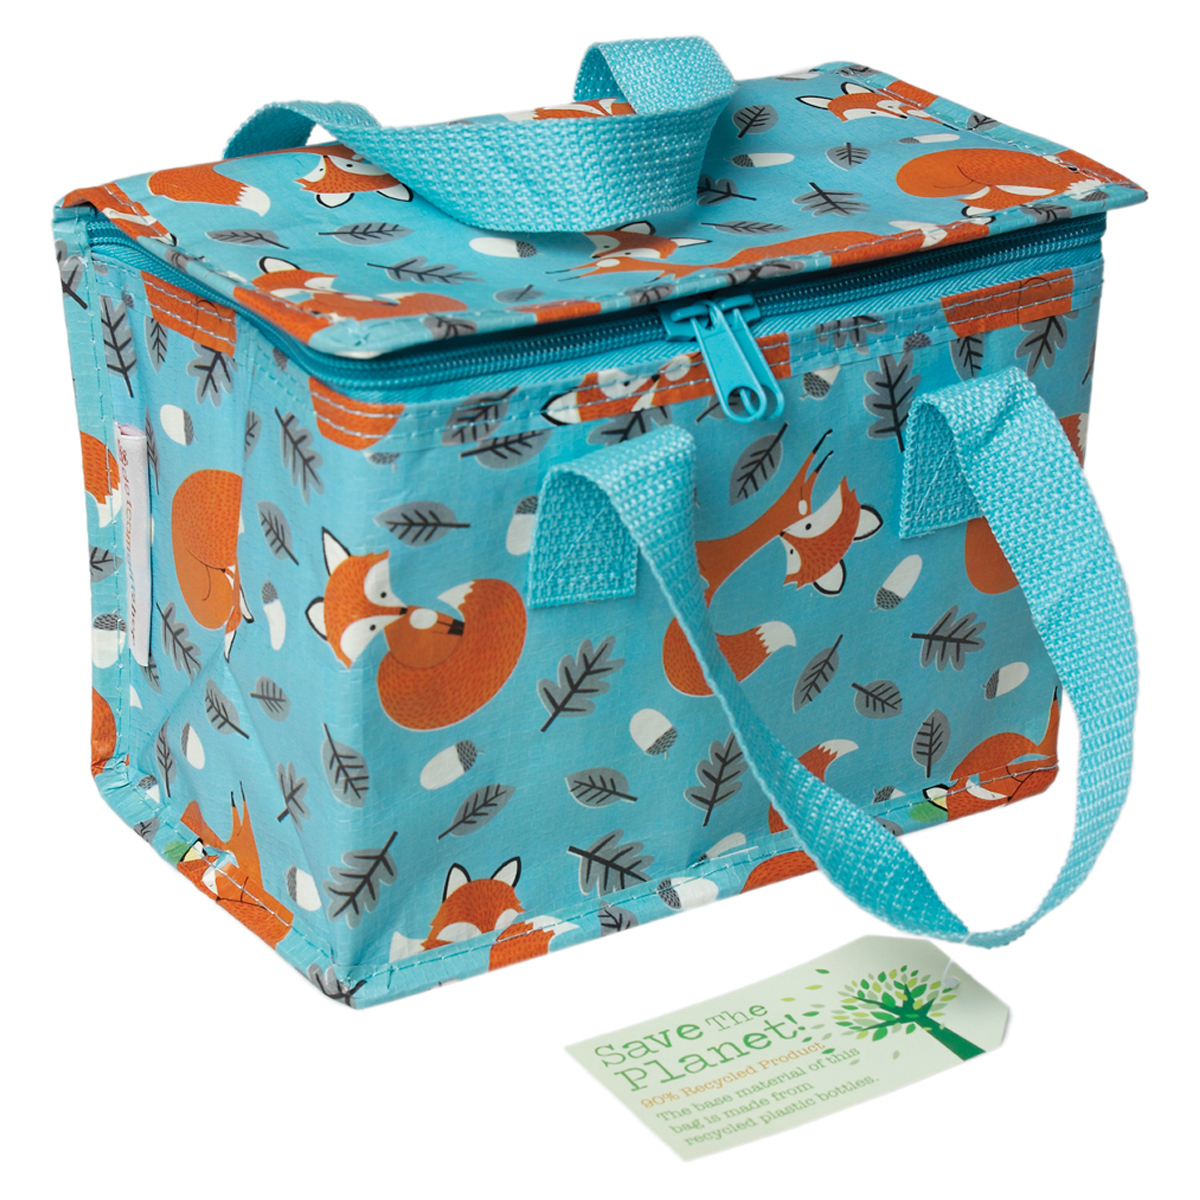 Sac isotherme Lunch Bag - Rusty le Renard Lunch Bag - Rusty le Renard